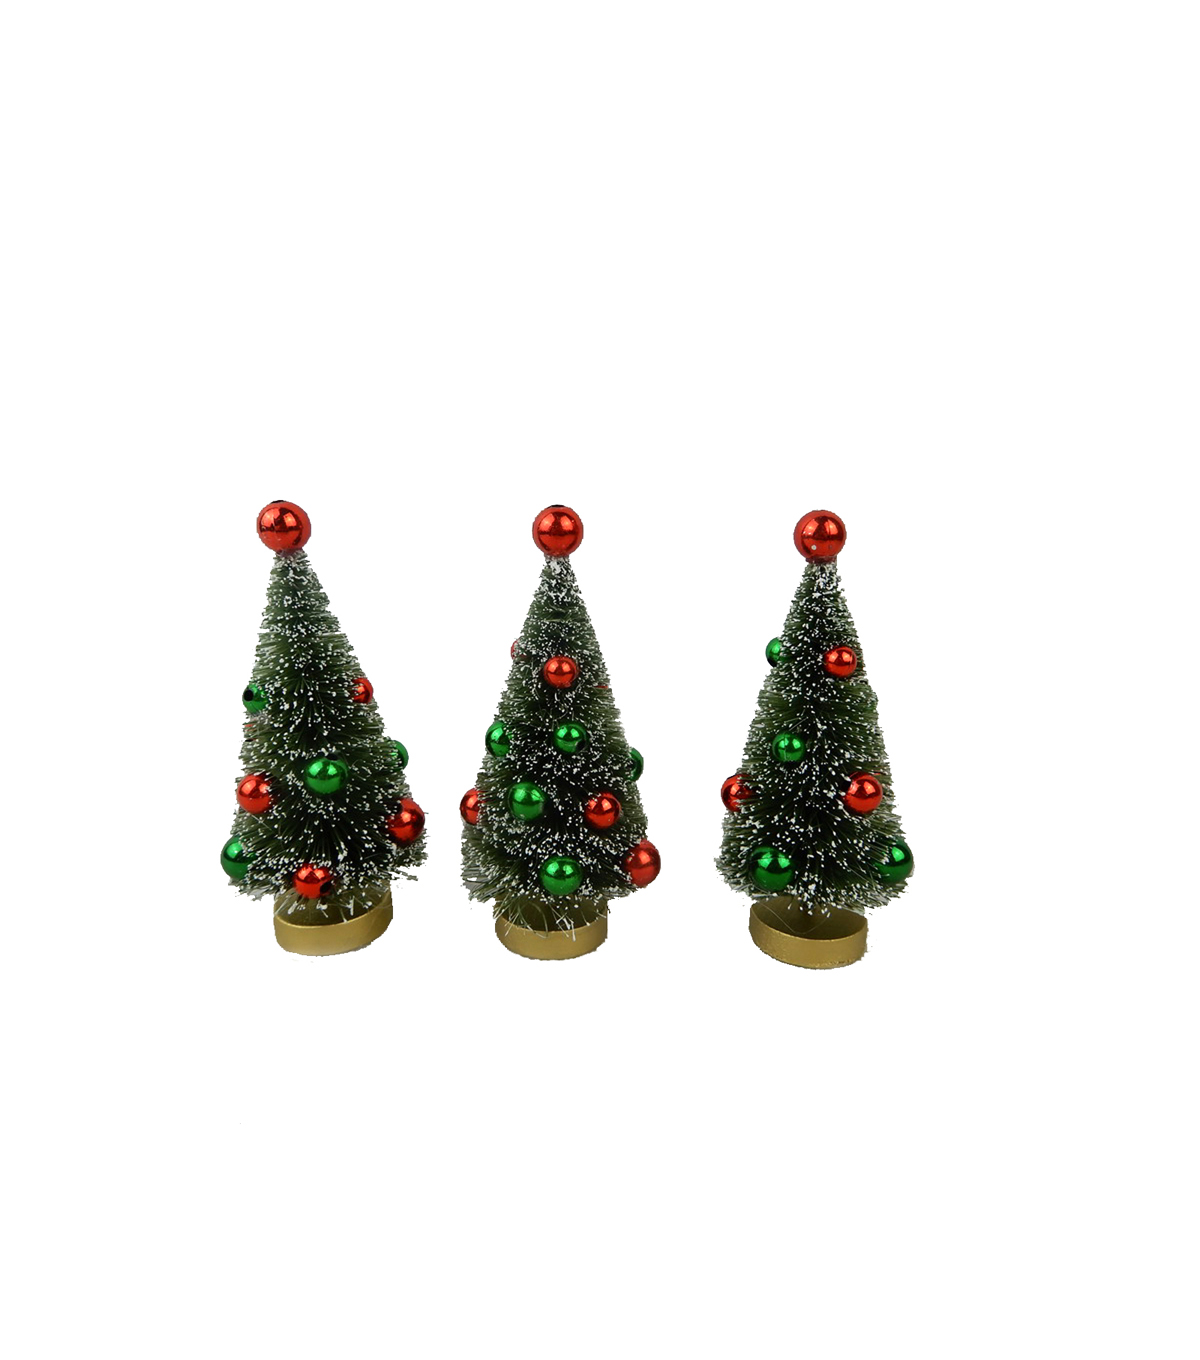 Maker\u0027s Holiday Christmas 3 pk 2\u0027\u0027x4\u0027\u0027 Trees with Ornaments-Red & Green